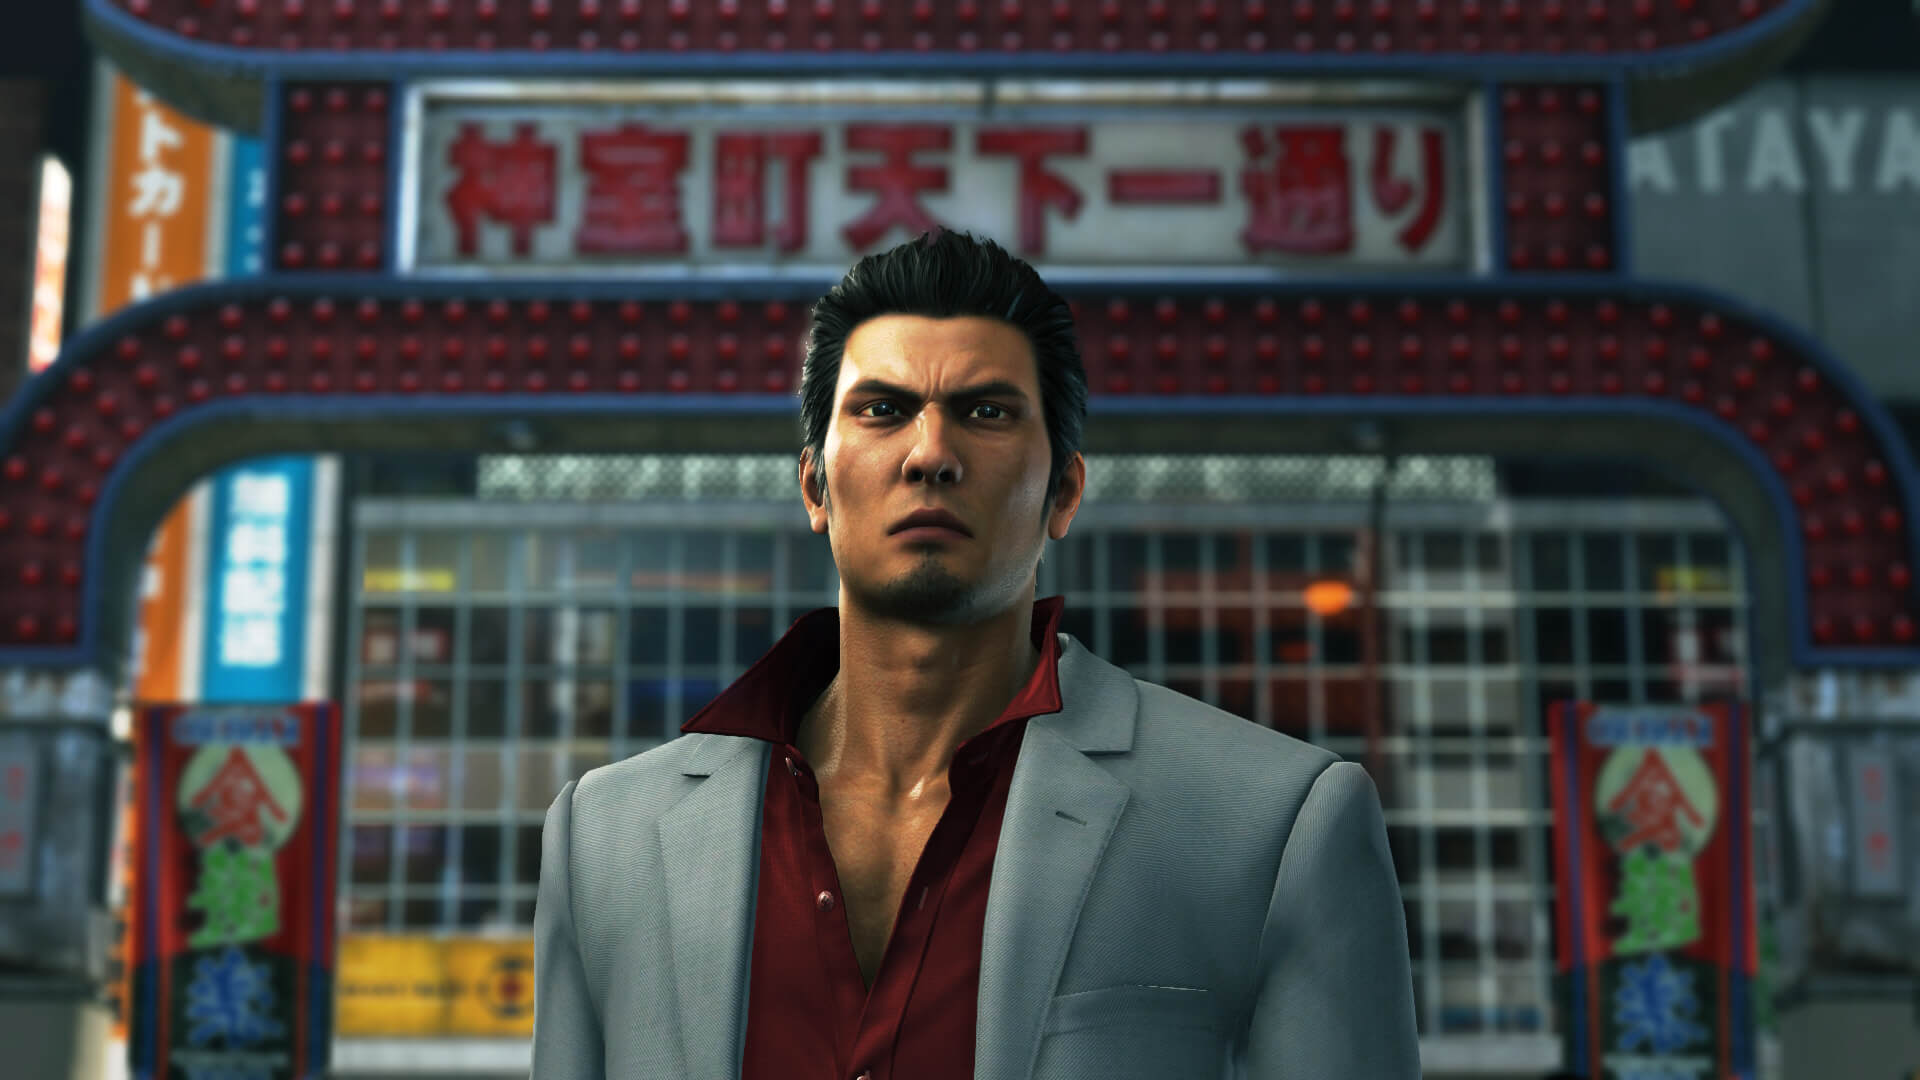 Foto de Yakuza 6 e coletânea perdem exclusividade do PS4!